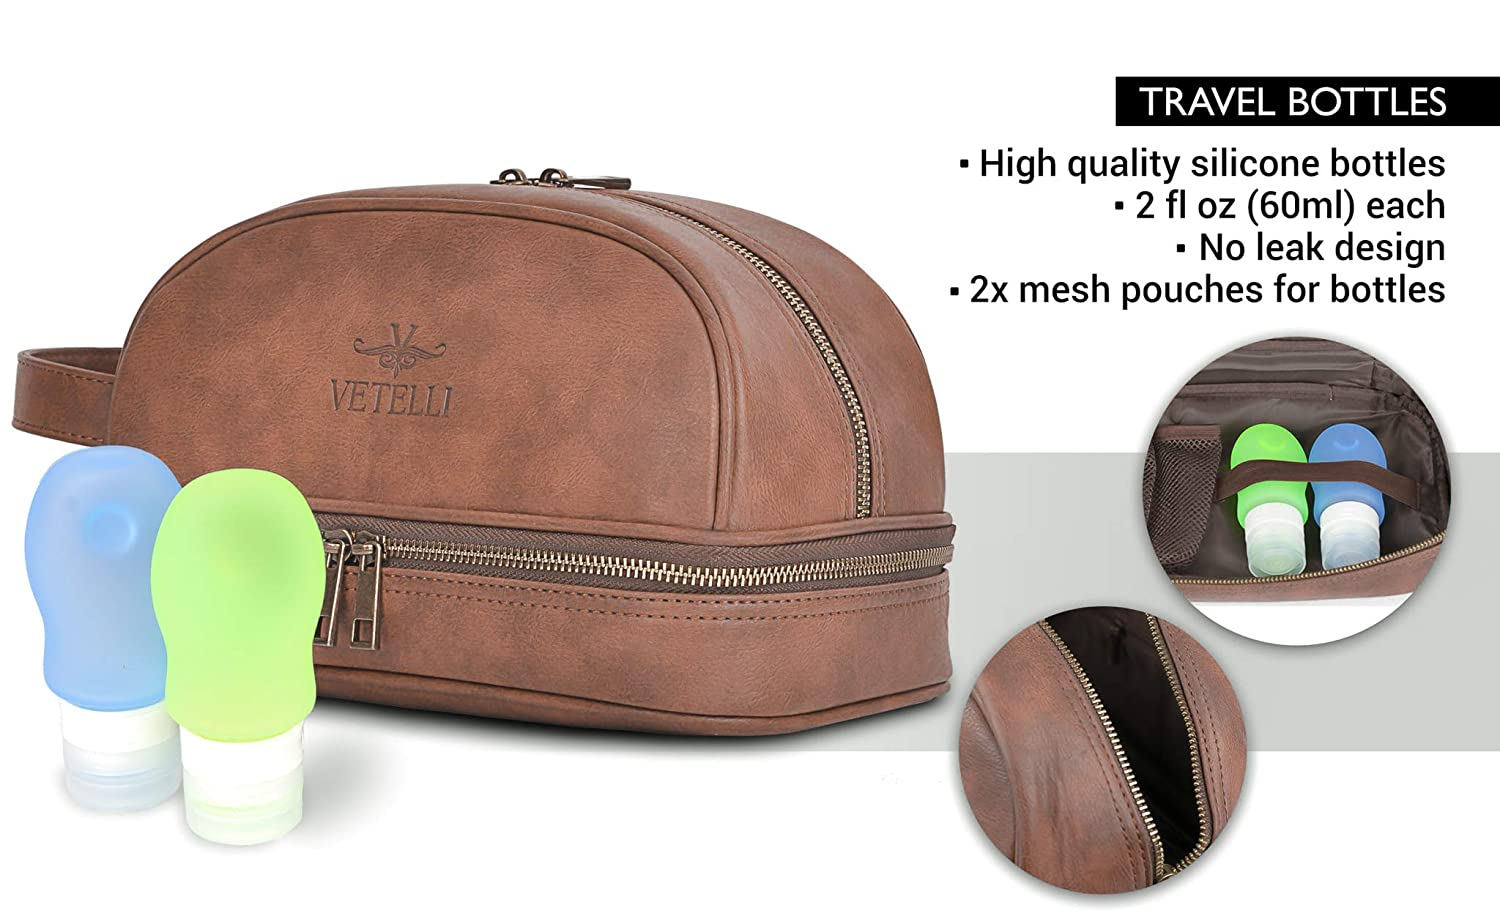 cb2ed966382f Amazon.com  Vetelli Leather Toiletry Bag For Men (Dopp Kit) with free  Travel Bottles. The perfect gift and travel accessory.  Clothing